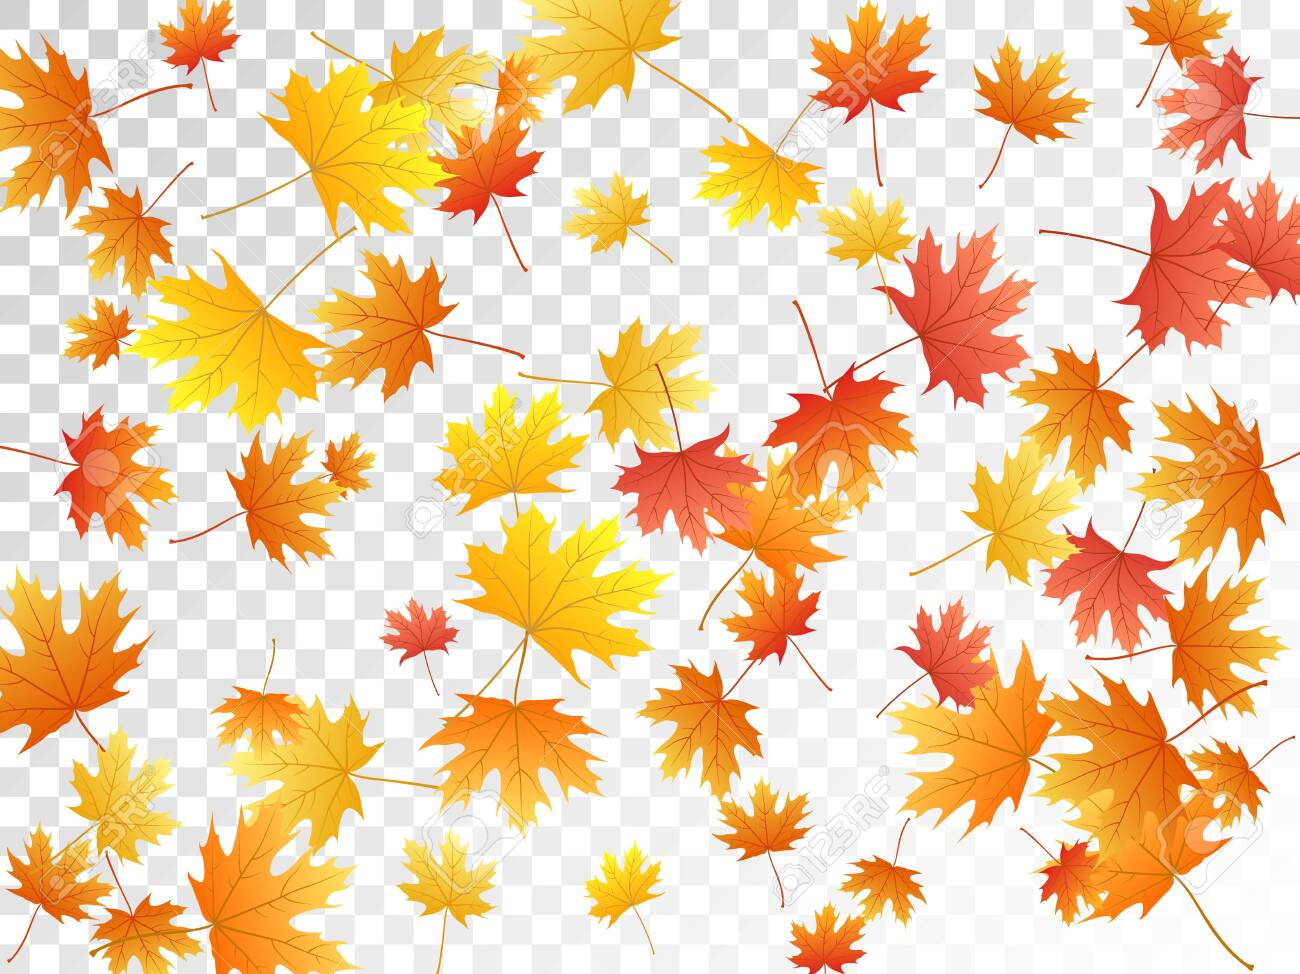 Maple Leaves Vector Autumn Foliage On Transparent Background Royalty Free Cliparts Vectors And Stock Illustration Image 123051707